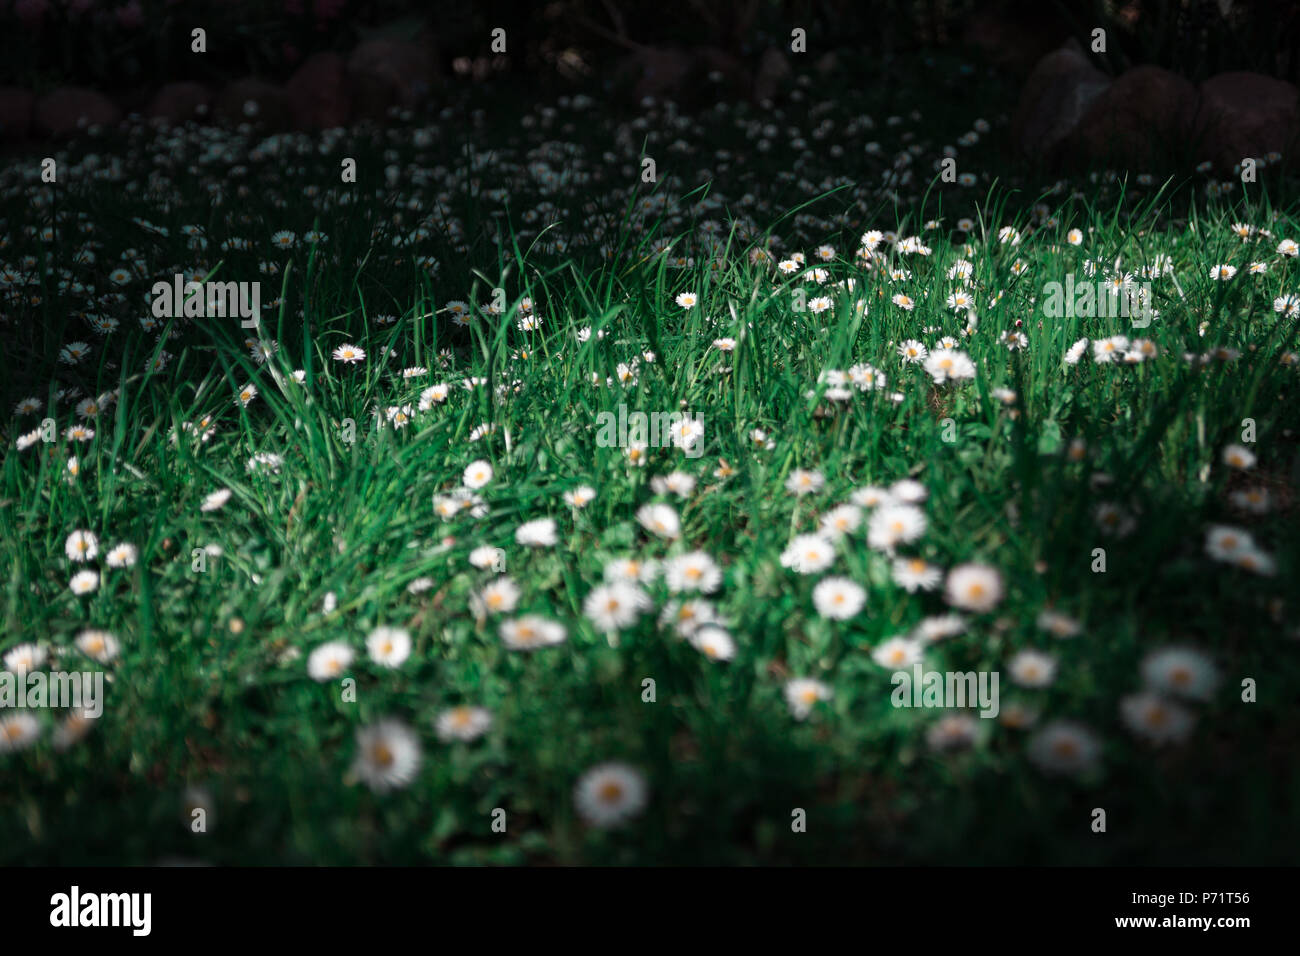 Beatiful flowers in the garden, good weather - Stock Image